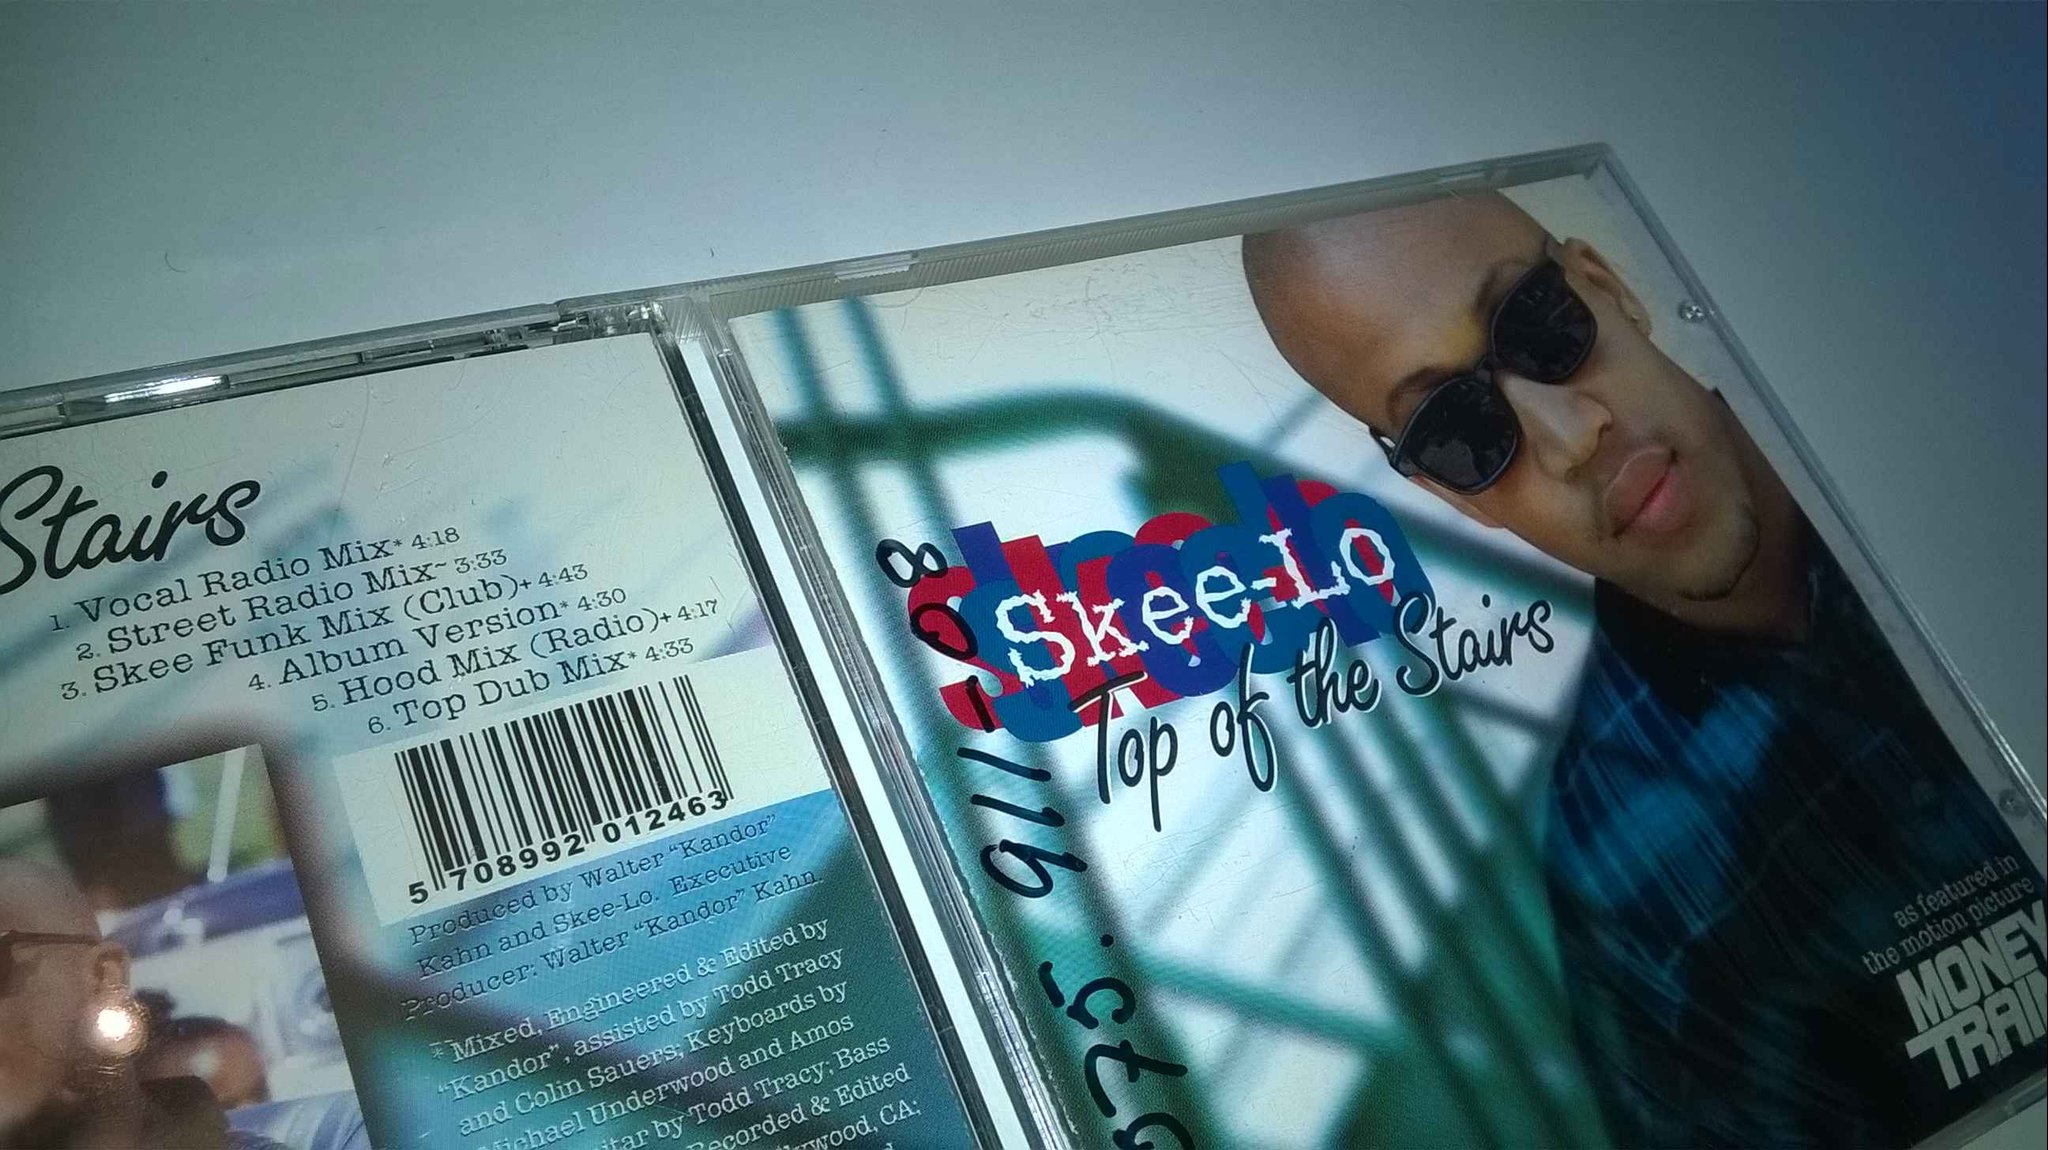 Skee-Lo - Top Of The Stairs, CD, single!